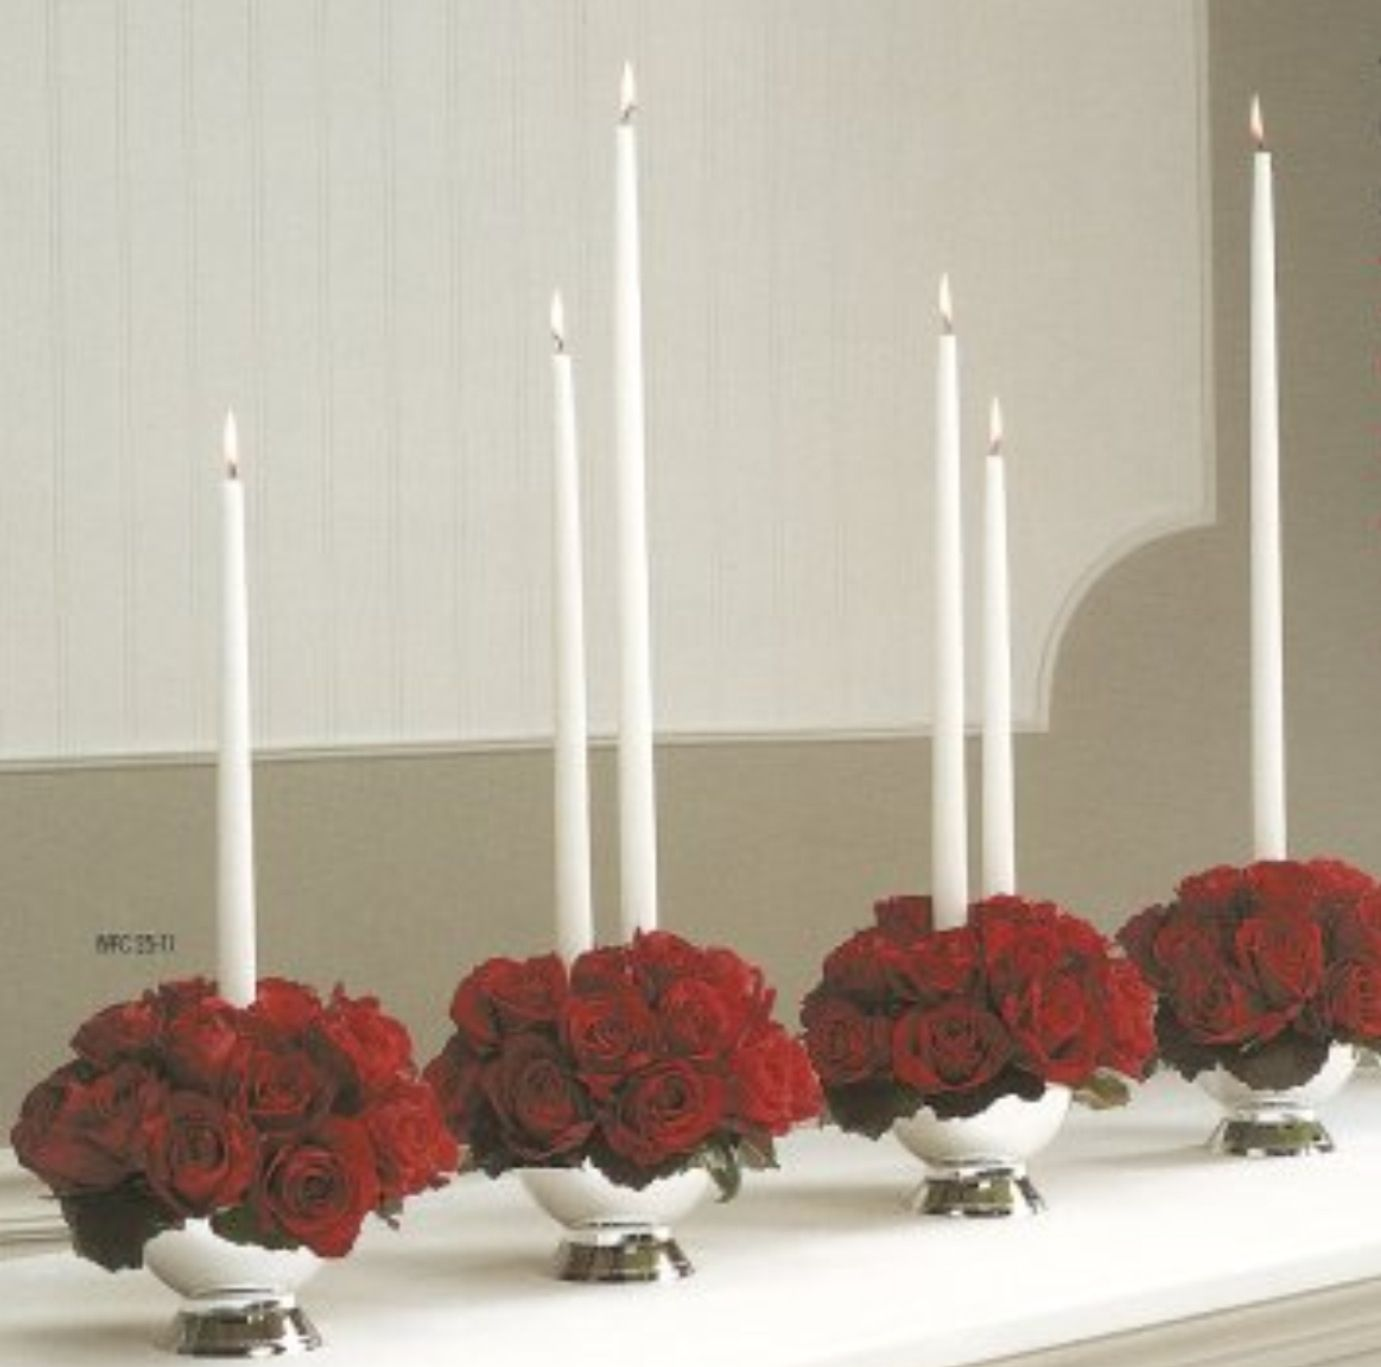 pinterest wedding table decorations candles%0A Find this Pin and more on Table Ideas Center pieces by dawnmedeiros